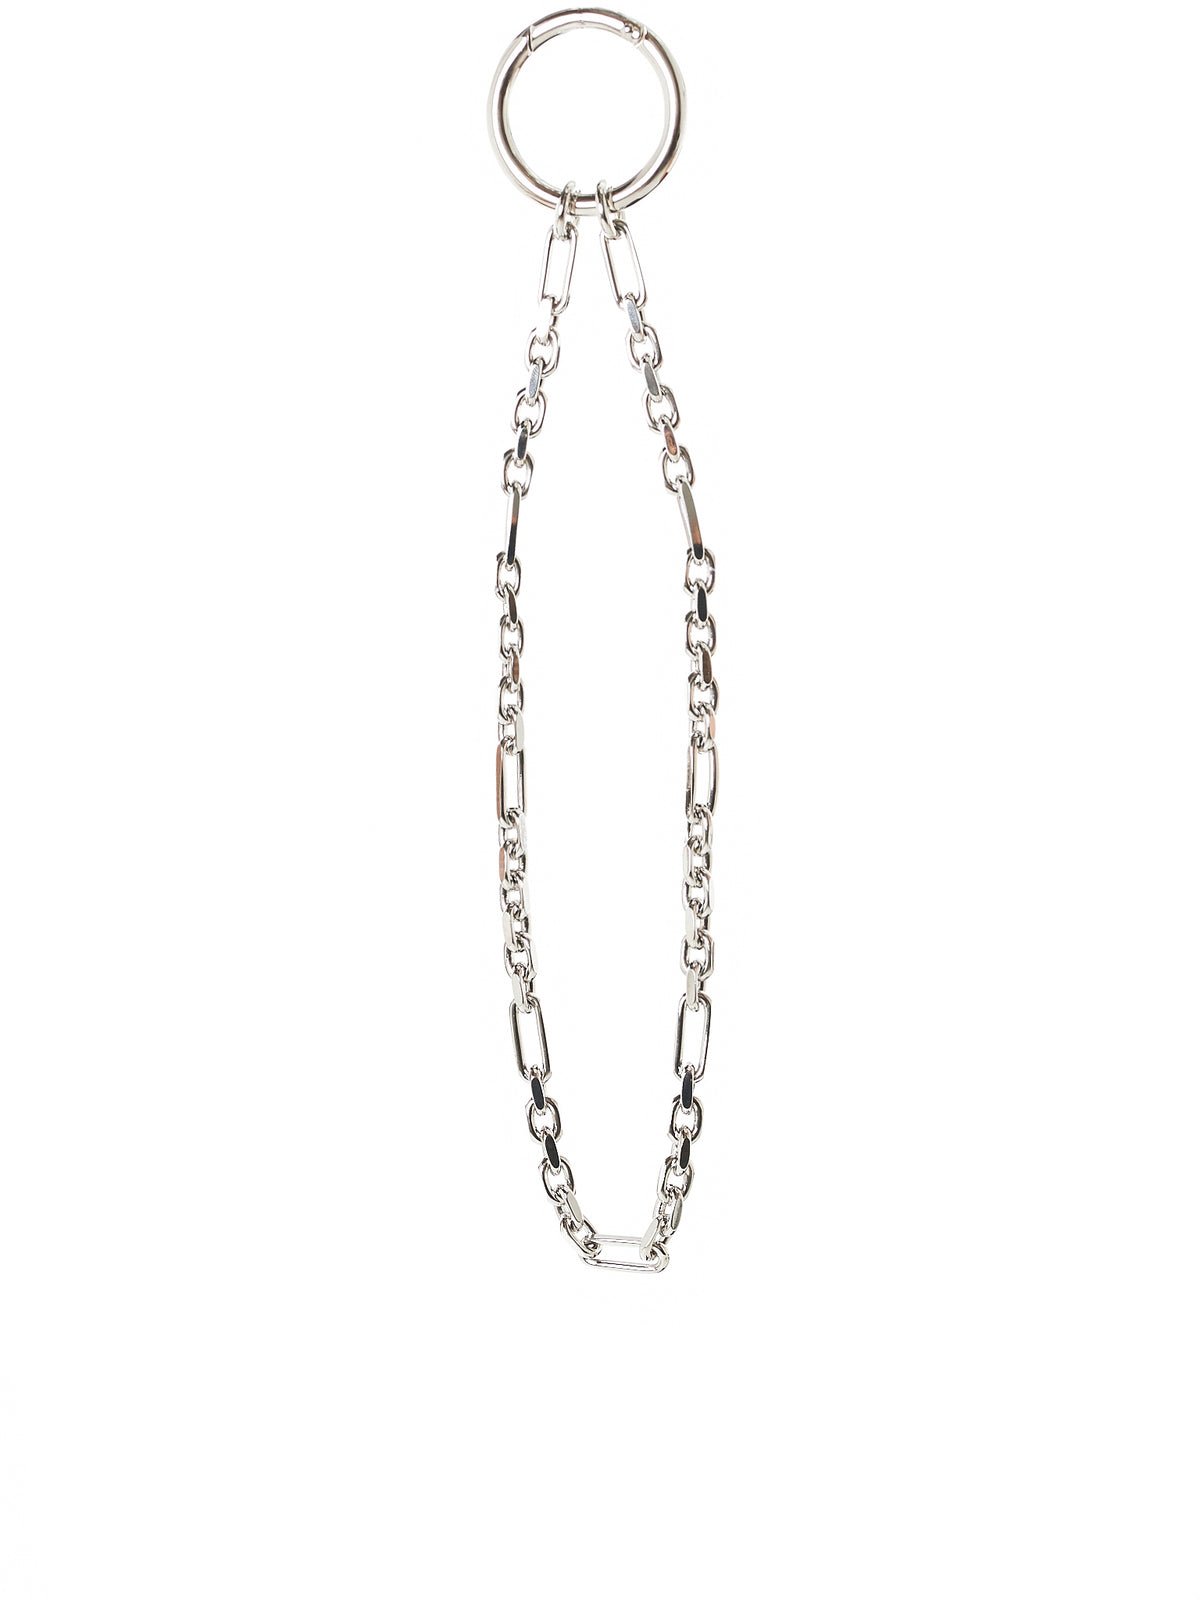 MM6 Maison Margiela Necklace - Hlorenzo Front